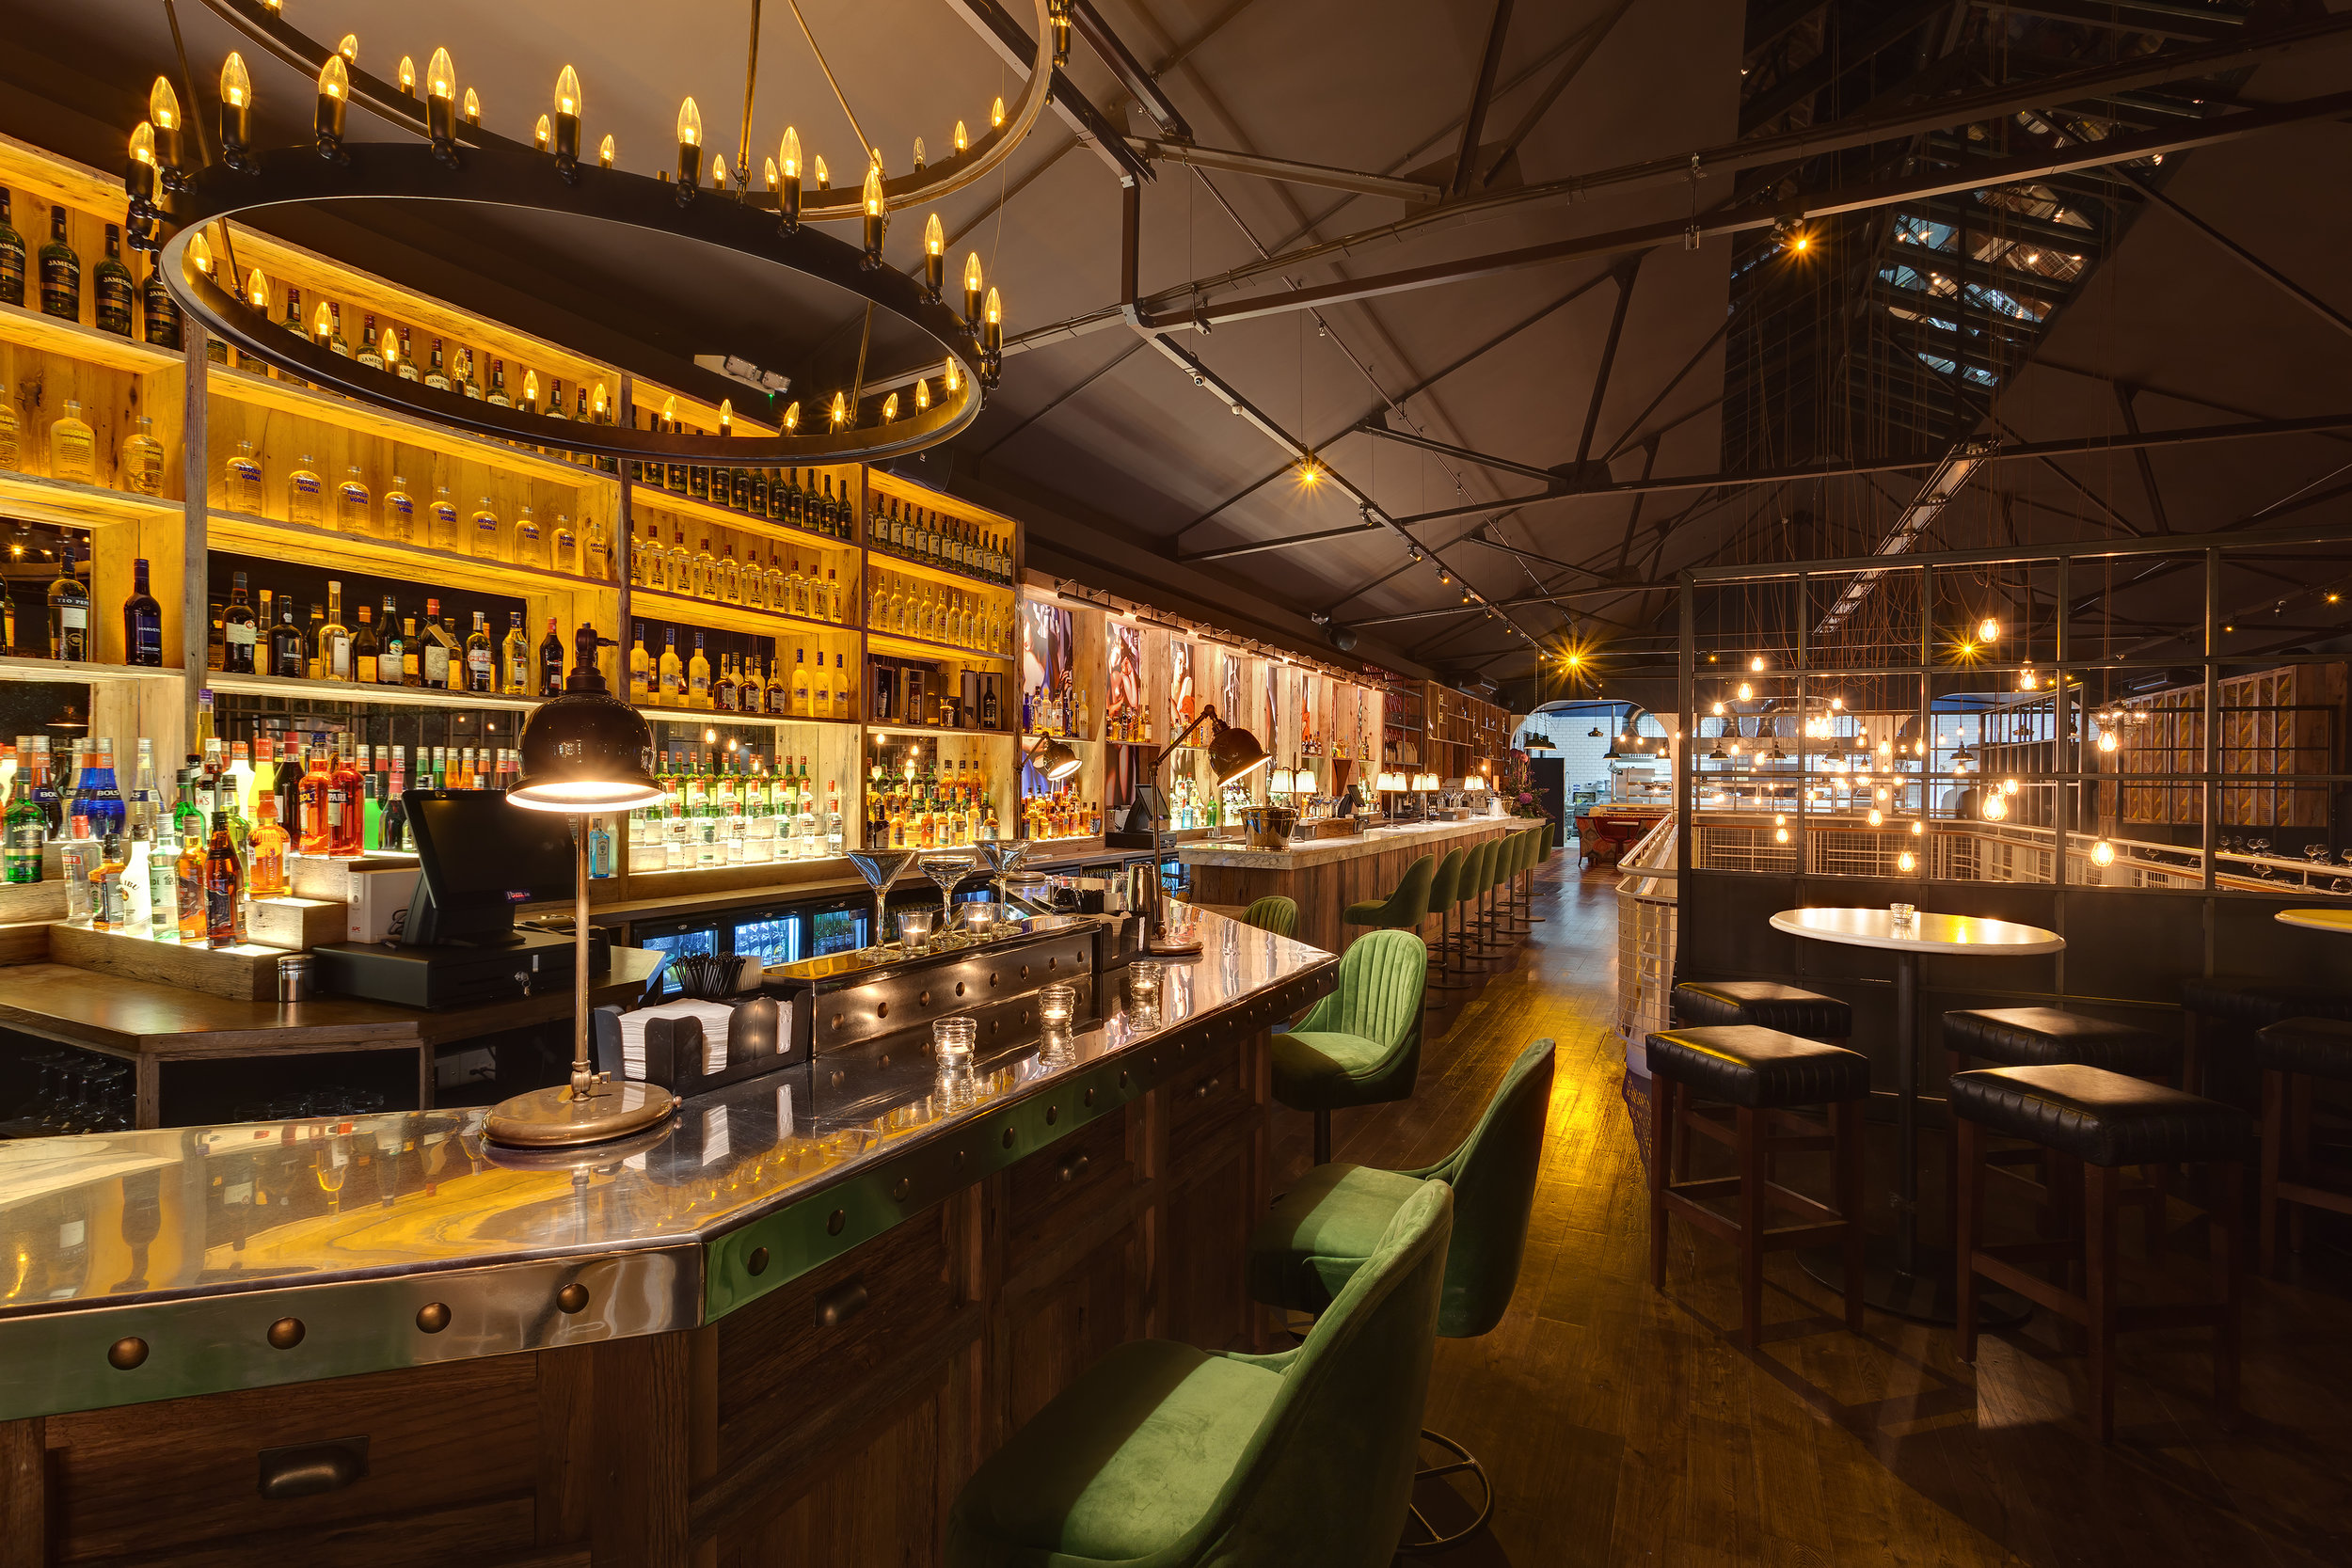 PUBLIC BAR - The Public Bar in Tribeton runs almost the length of the venue and features a beautiful re-claimed oak base with Italian marble counter top on the main bar and a shining Belfast pewter top on the cocktail bar. Pewter was once only for the wealthy in Ireland and was found on the tables of castle halls. Today we have combined over 800 years of Irish Pewter with modern day metalwork to create a stunning focal point for our guests.Above the cocktail bar hangs a specially commissioned bronze two tiered cartwheel chandelier which was modelled on an original  smaller lantern sourced in Cornwall in over 20 years ago and now hangs in Kirwan's lane. The medieval style is a celebration of the history of Galway and a love of ancient crafts honed from generation to generation.The Public Bar is situated in the heart of our venue, so you can have pre-dinner drinks before heading into the Restaurant, or you can stay here all night long.Join us in the evenings for elegant cocktails - we specialise in sours, .martinis and gin & tonic. We are the biggest gin bar in the Connacht with over 130 gins in stock, including our own brand Galway Gin Co.Check our What's on page where you can find the latest news & events from Tribeton.Our monthly events line-up has the key dates for your diary.